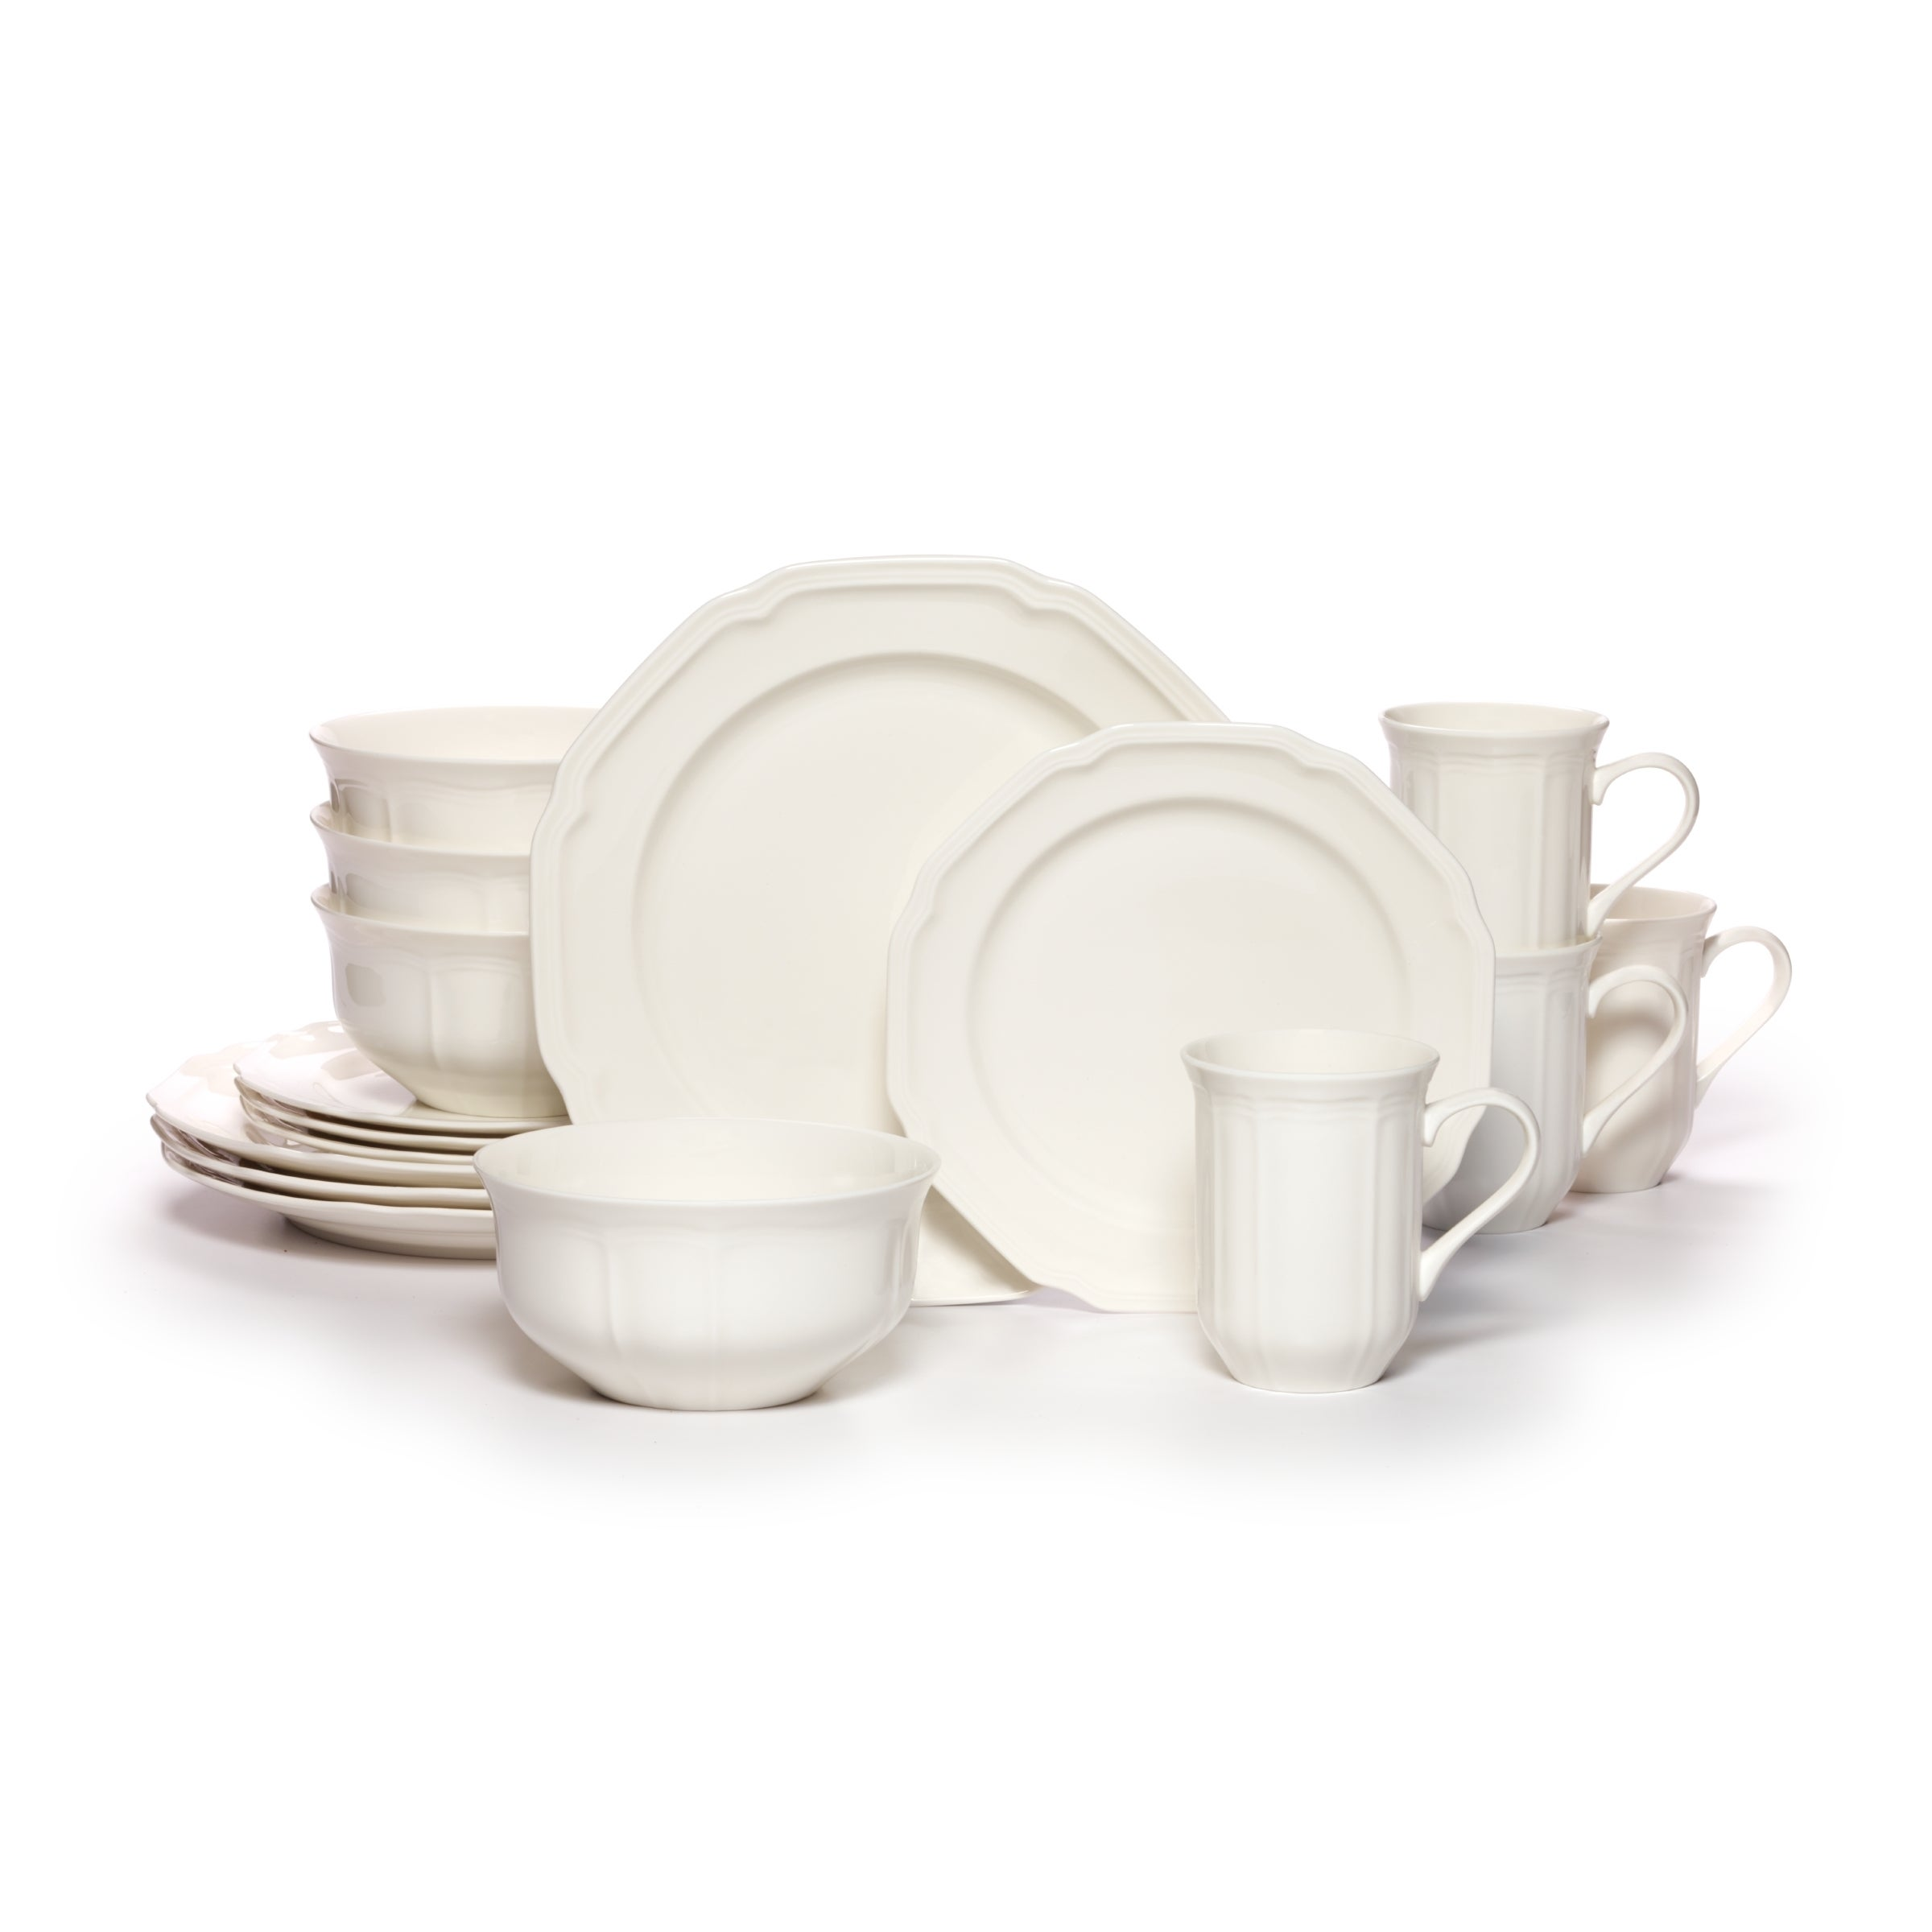 Mikasa Round Antique White Porcelain 16-piece Dinnerware Set - Free Shipping Today - Overstock - 18958479  sc 1 st  Overstock : antique white dinnerware - pezcame.com